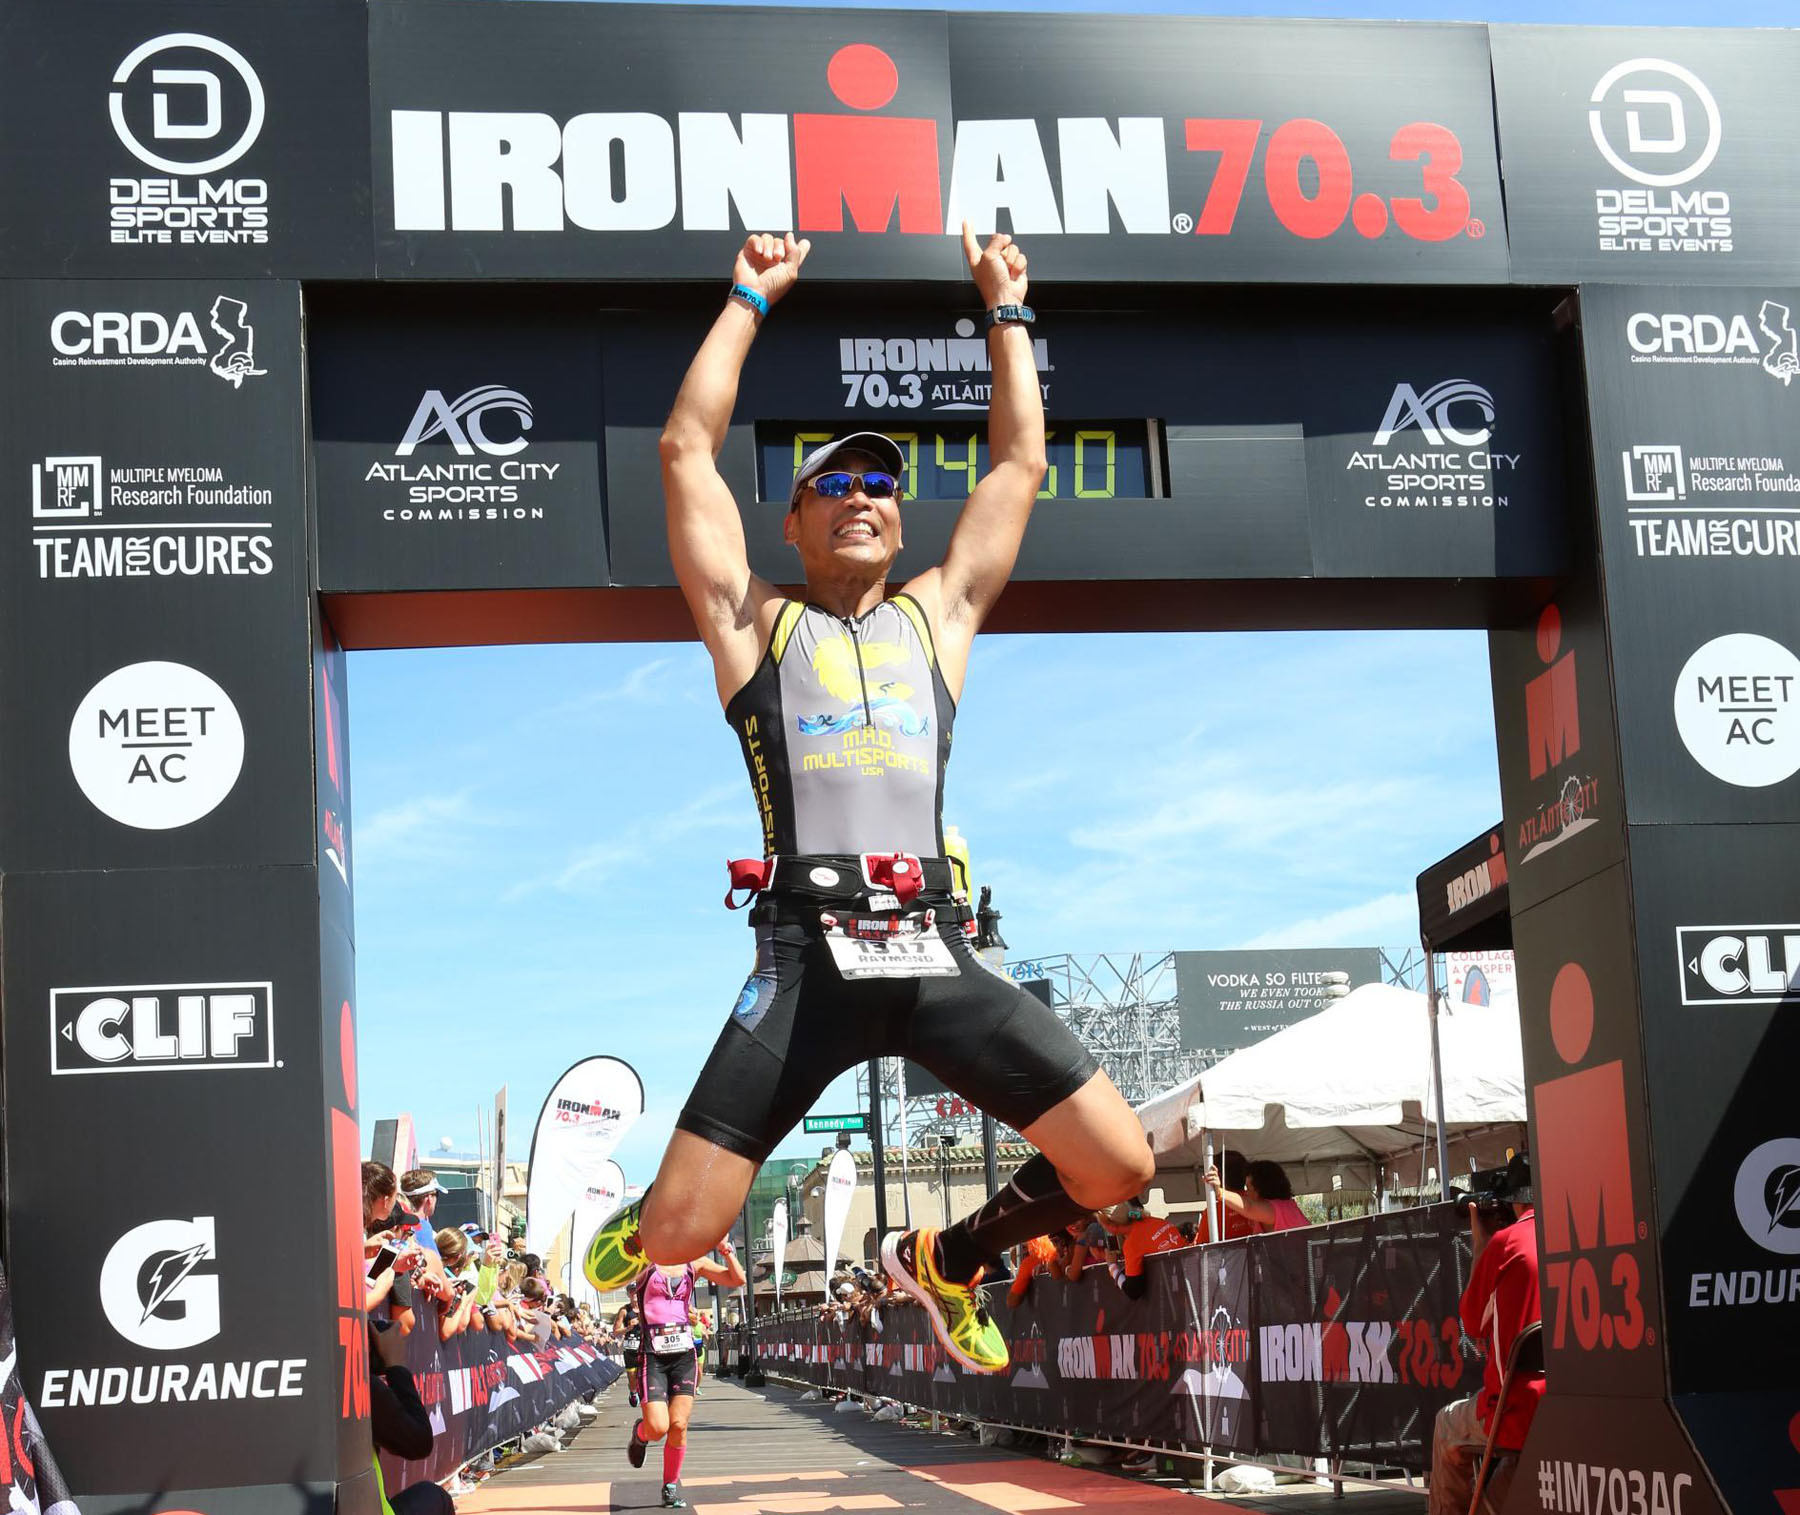 finish airtime- Ironman 70.3 Atlantic City